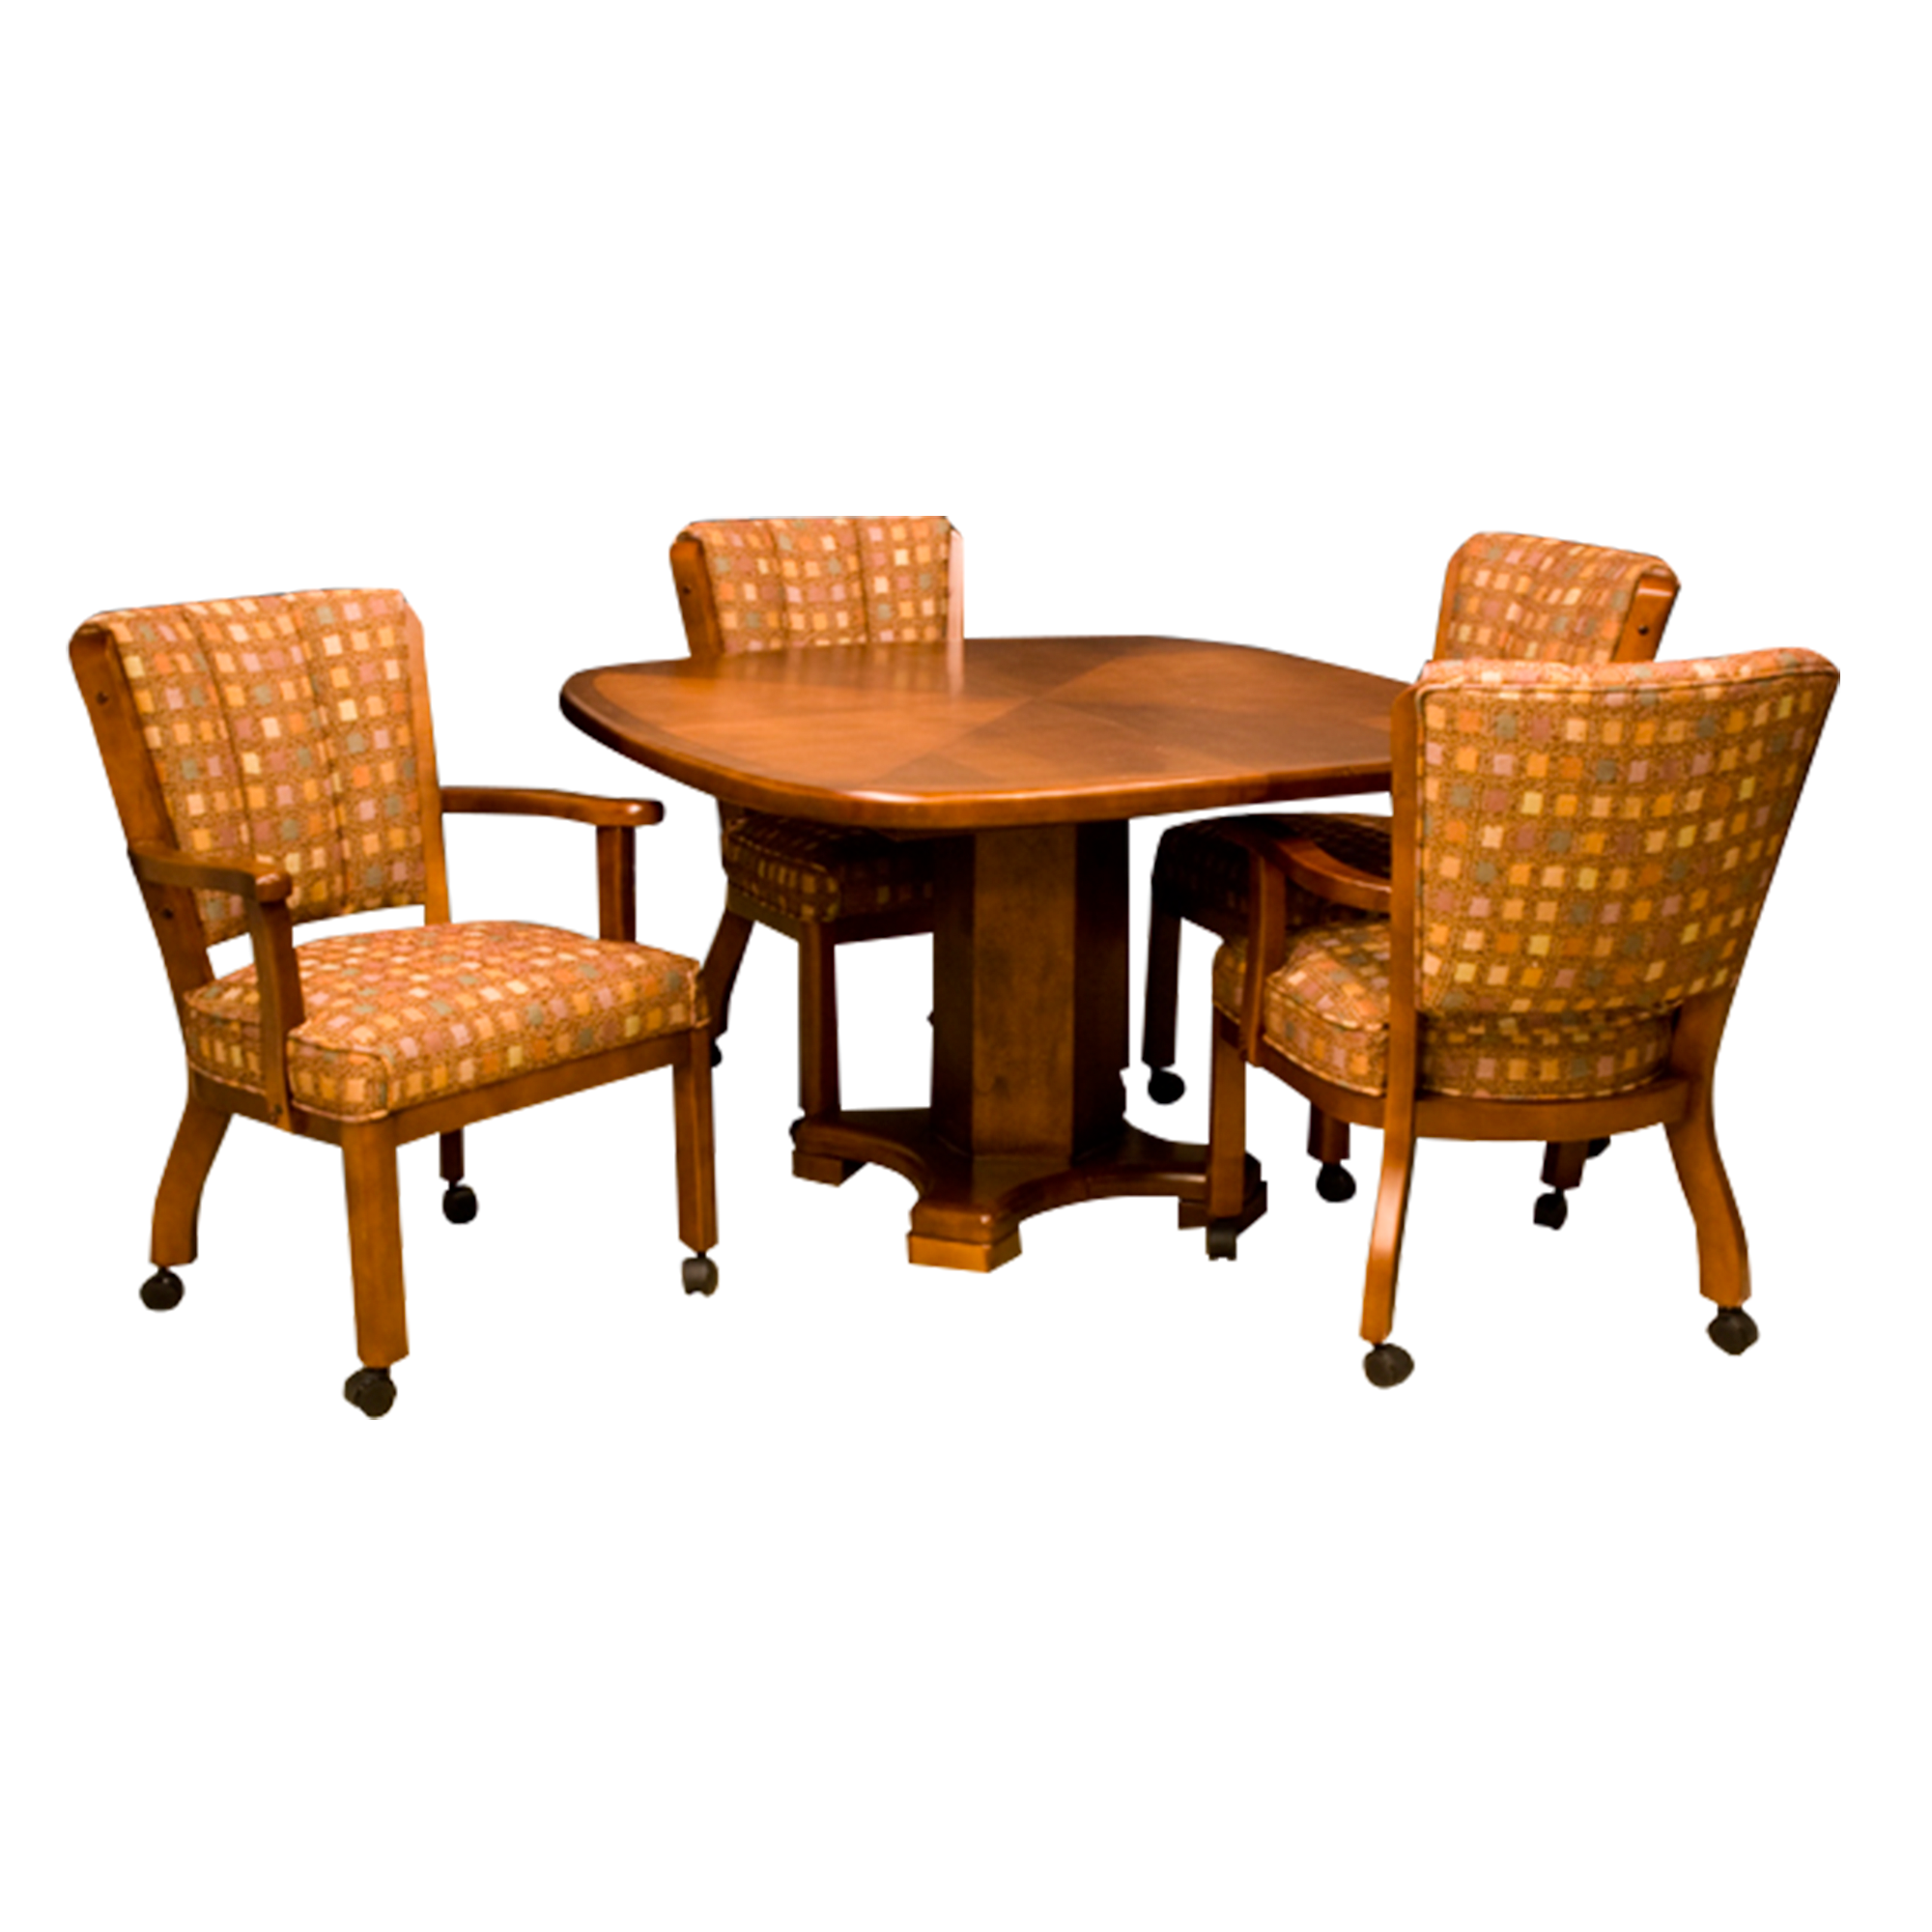 t5357 casual dining table c1108 4lc c1109 4lc caster chairs